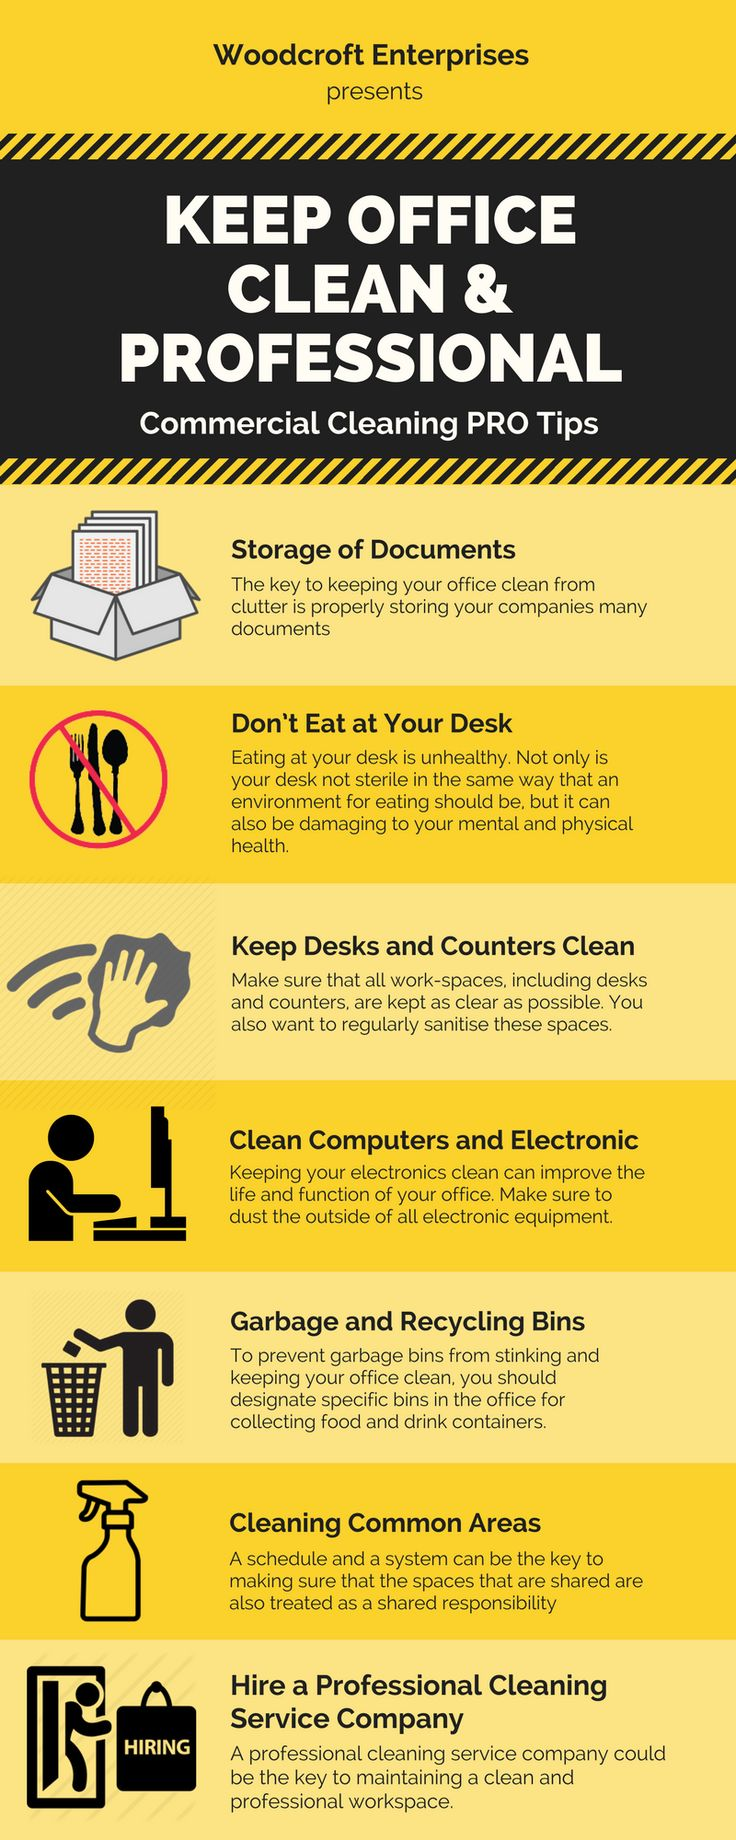 Basic commercial cleaning tips that will help to keep your office neat & clean. It would be recommended if you want to enjoy clean surrounding in office. Otherwise you can hire a professional cleaning service